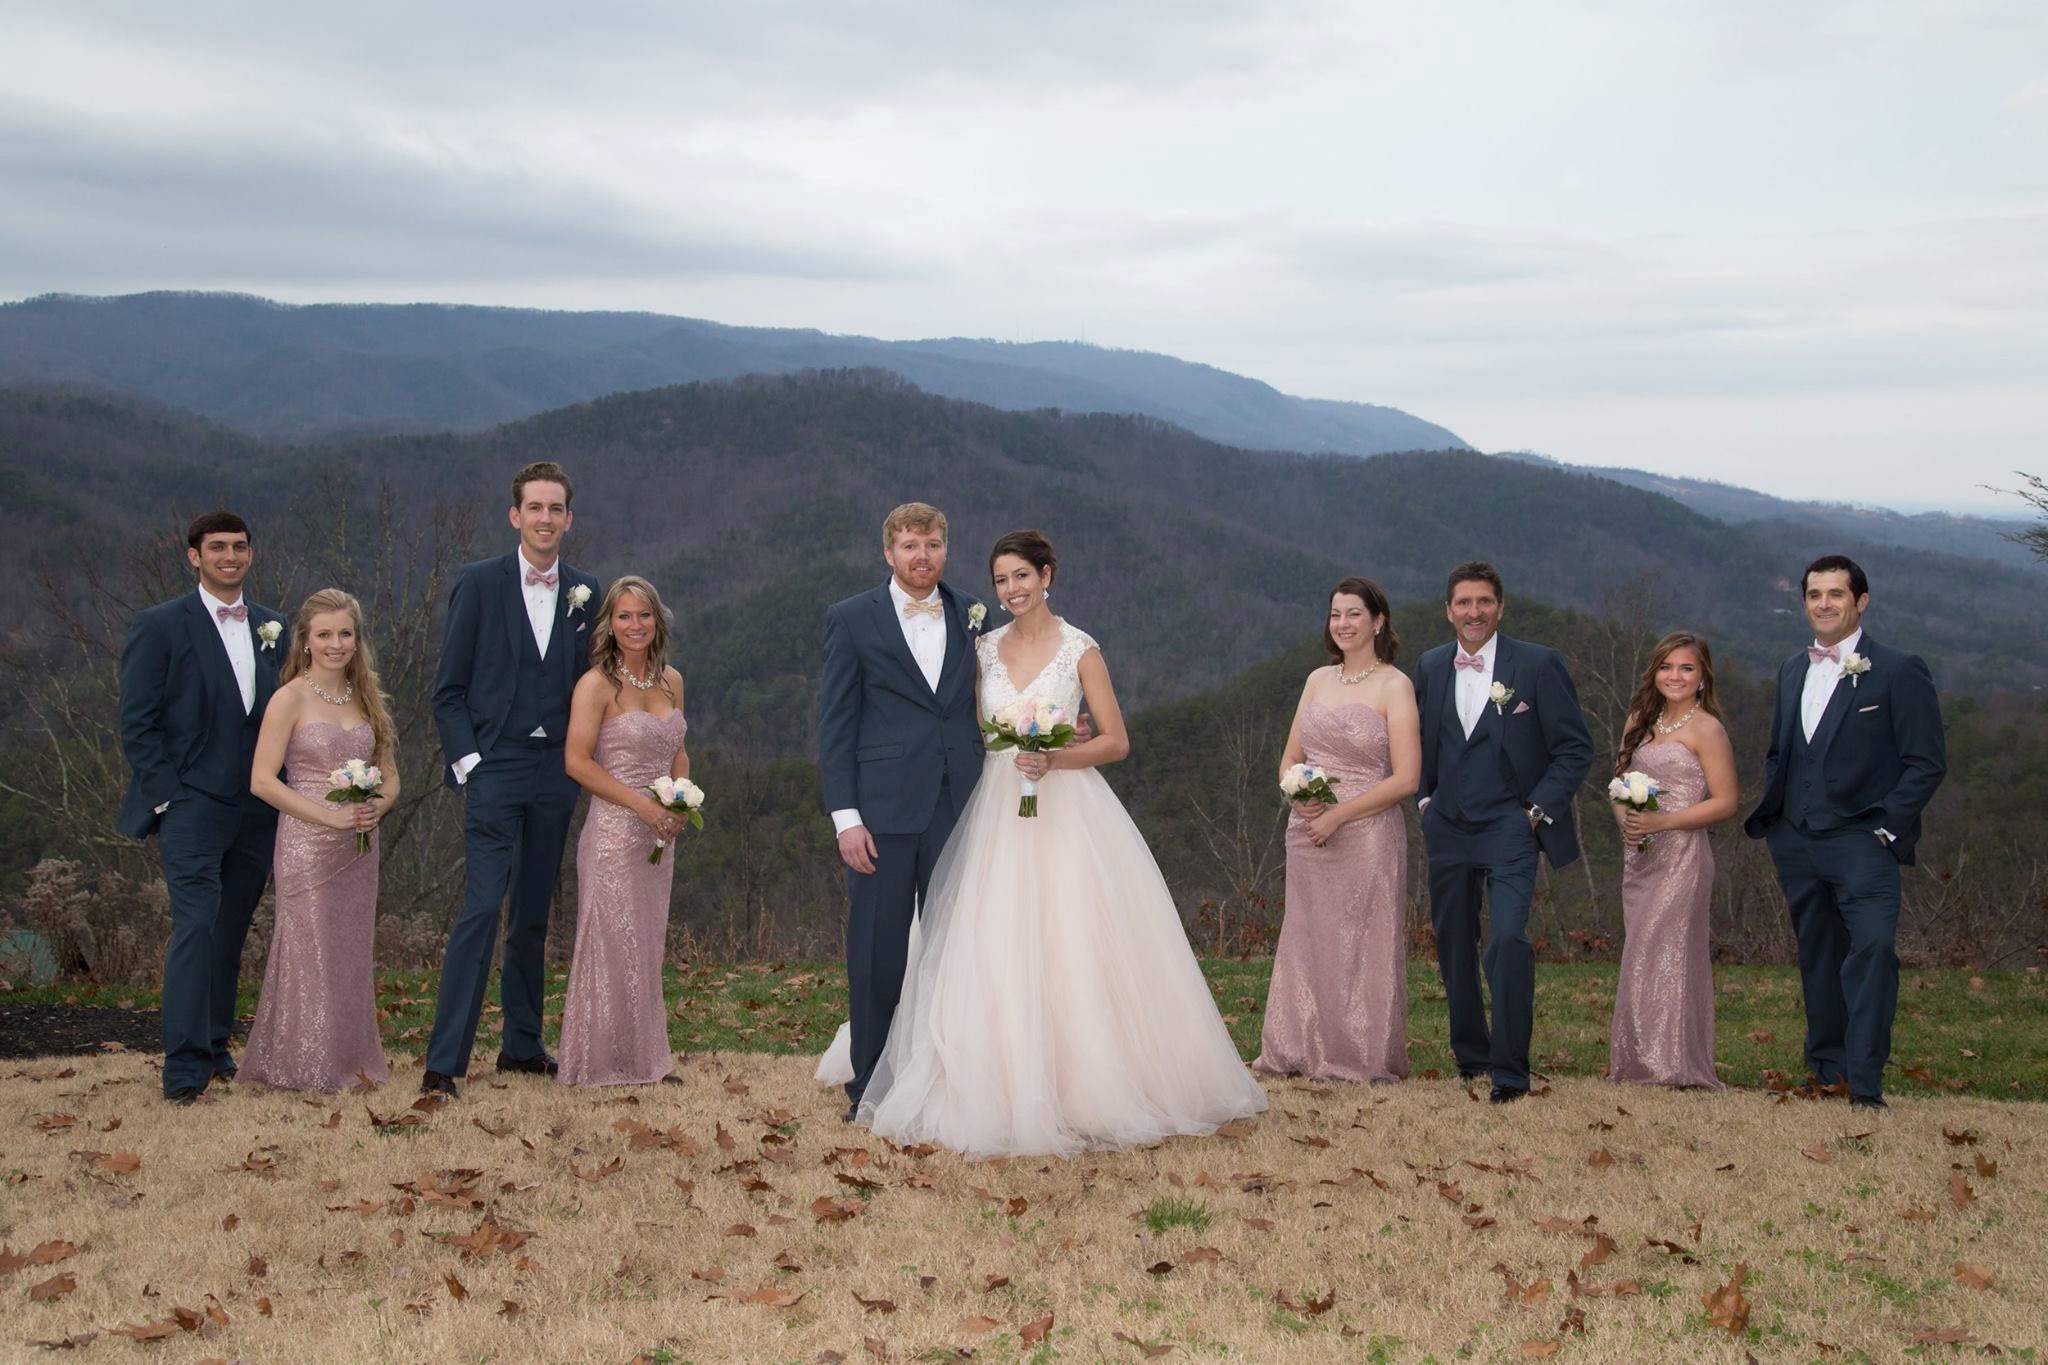 Eden Crest Weddings in the Smoky Mountains - 1